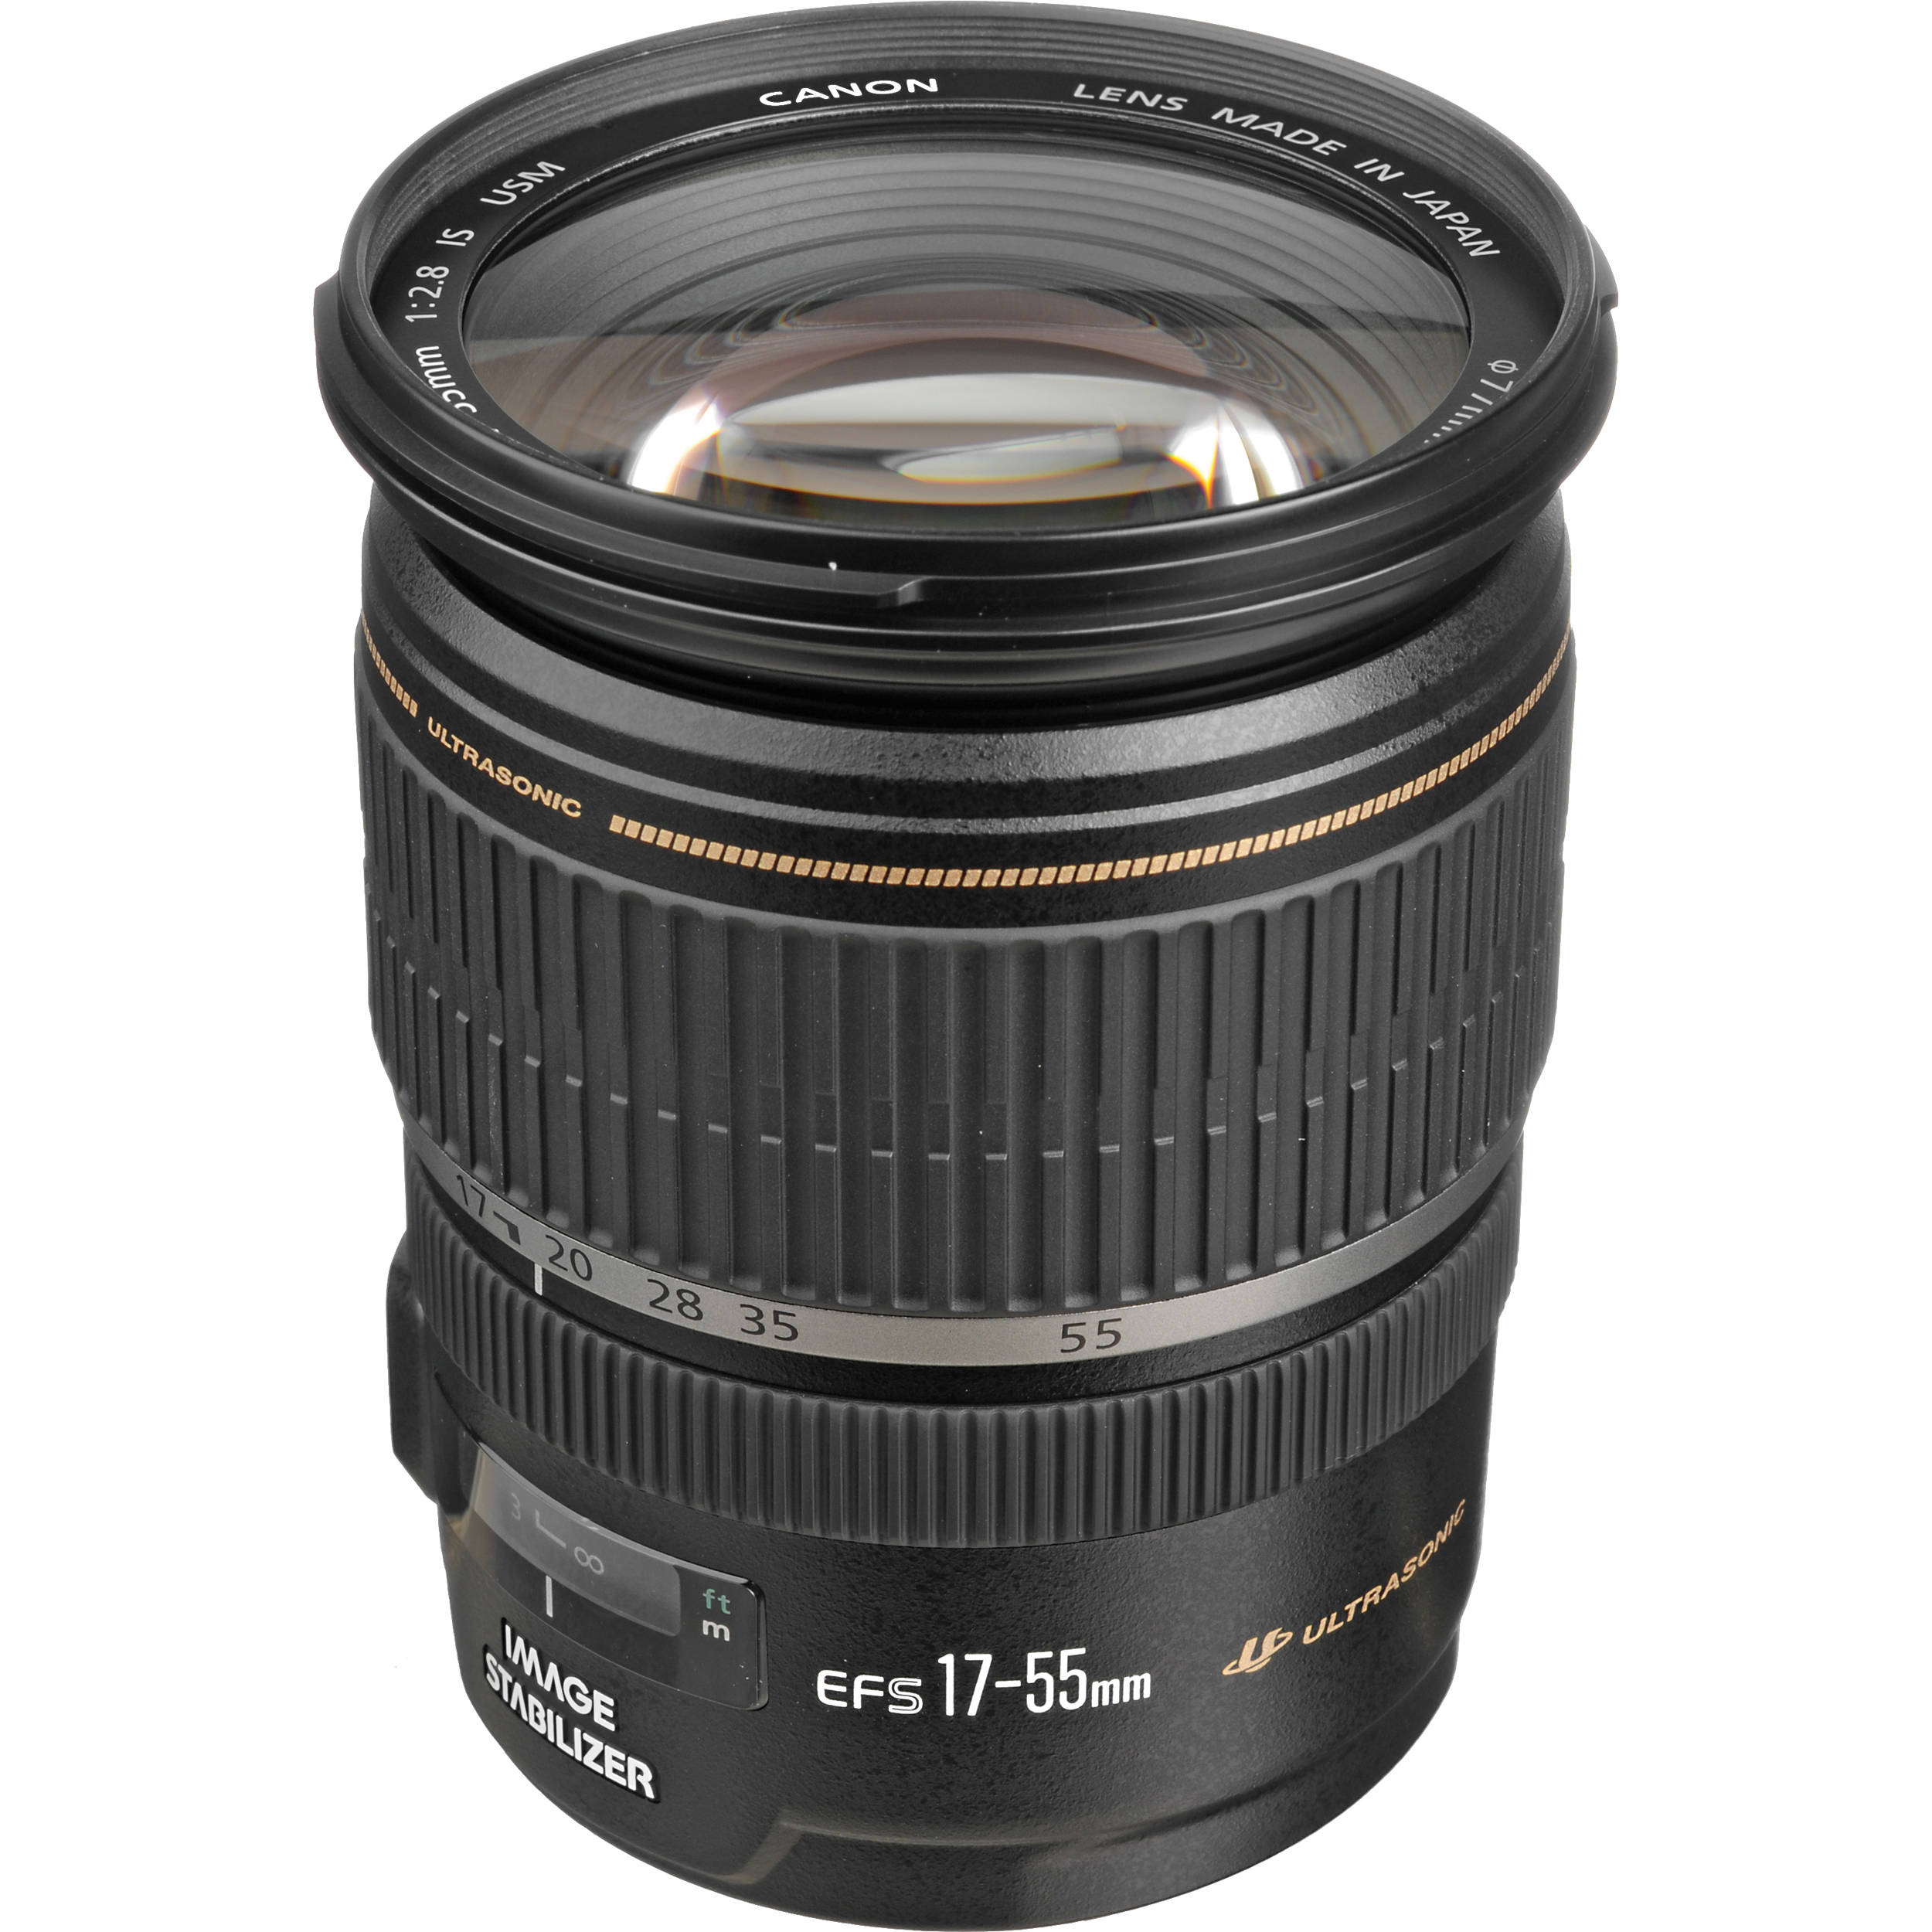 Image of Canon EF-S 17-55mm f/2.8 IS USM Lens